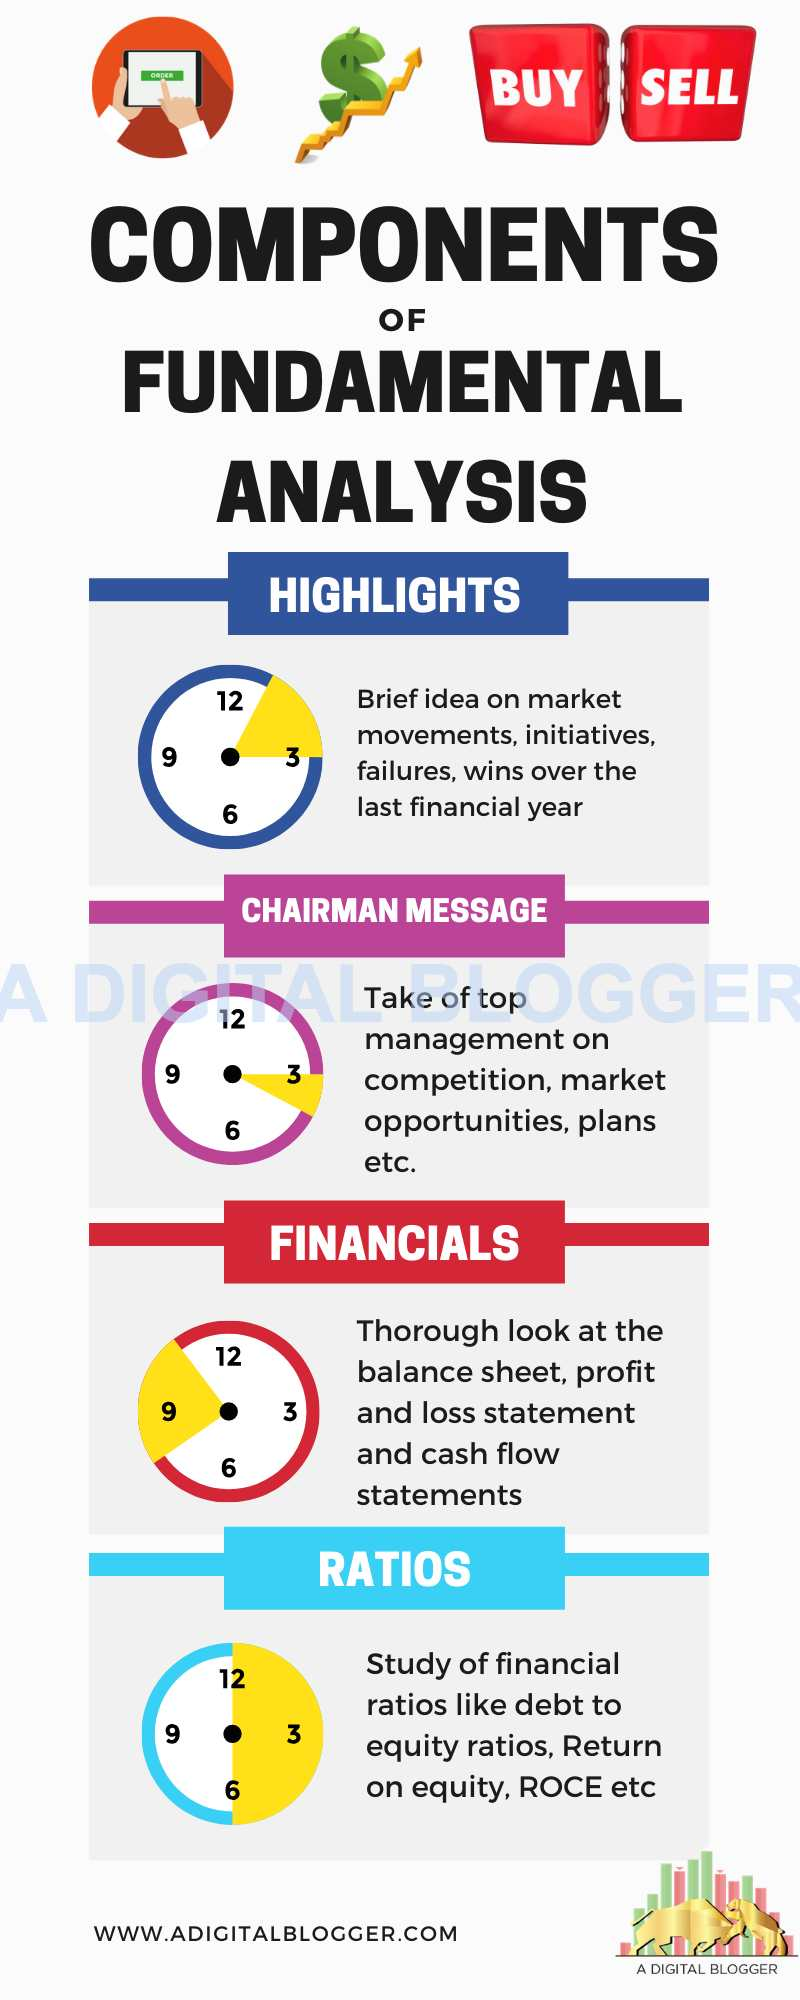 Components of Fundamental Analysis